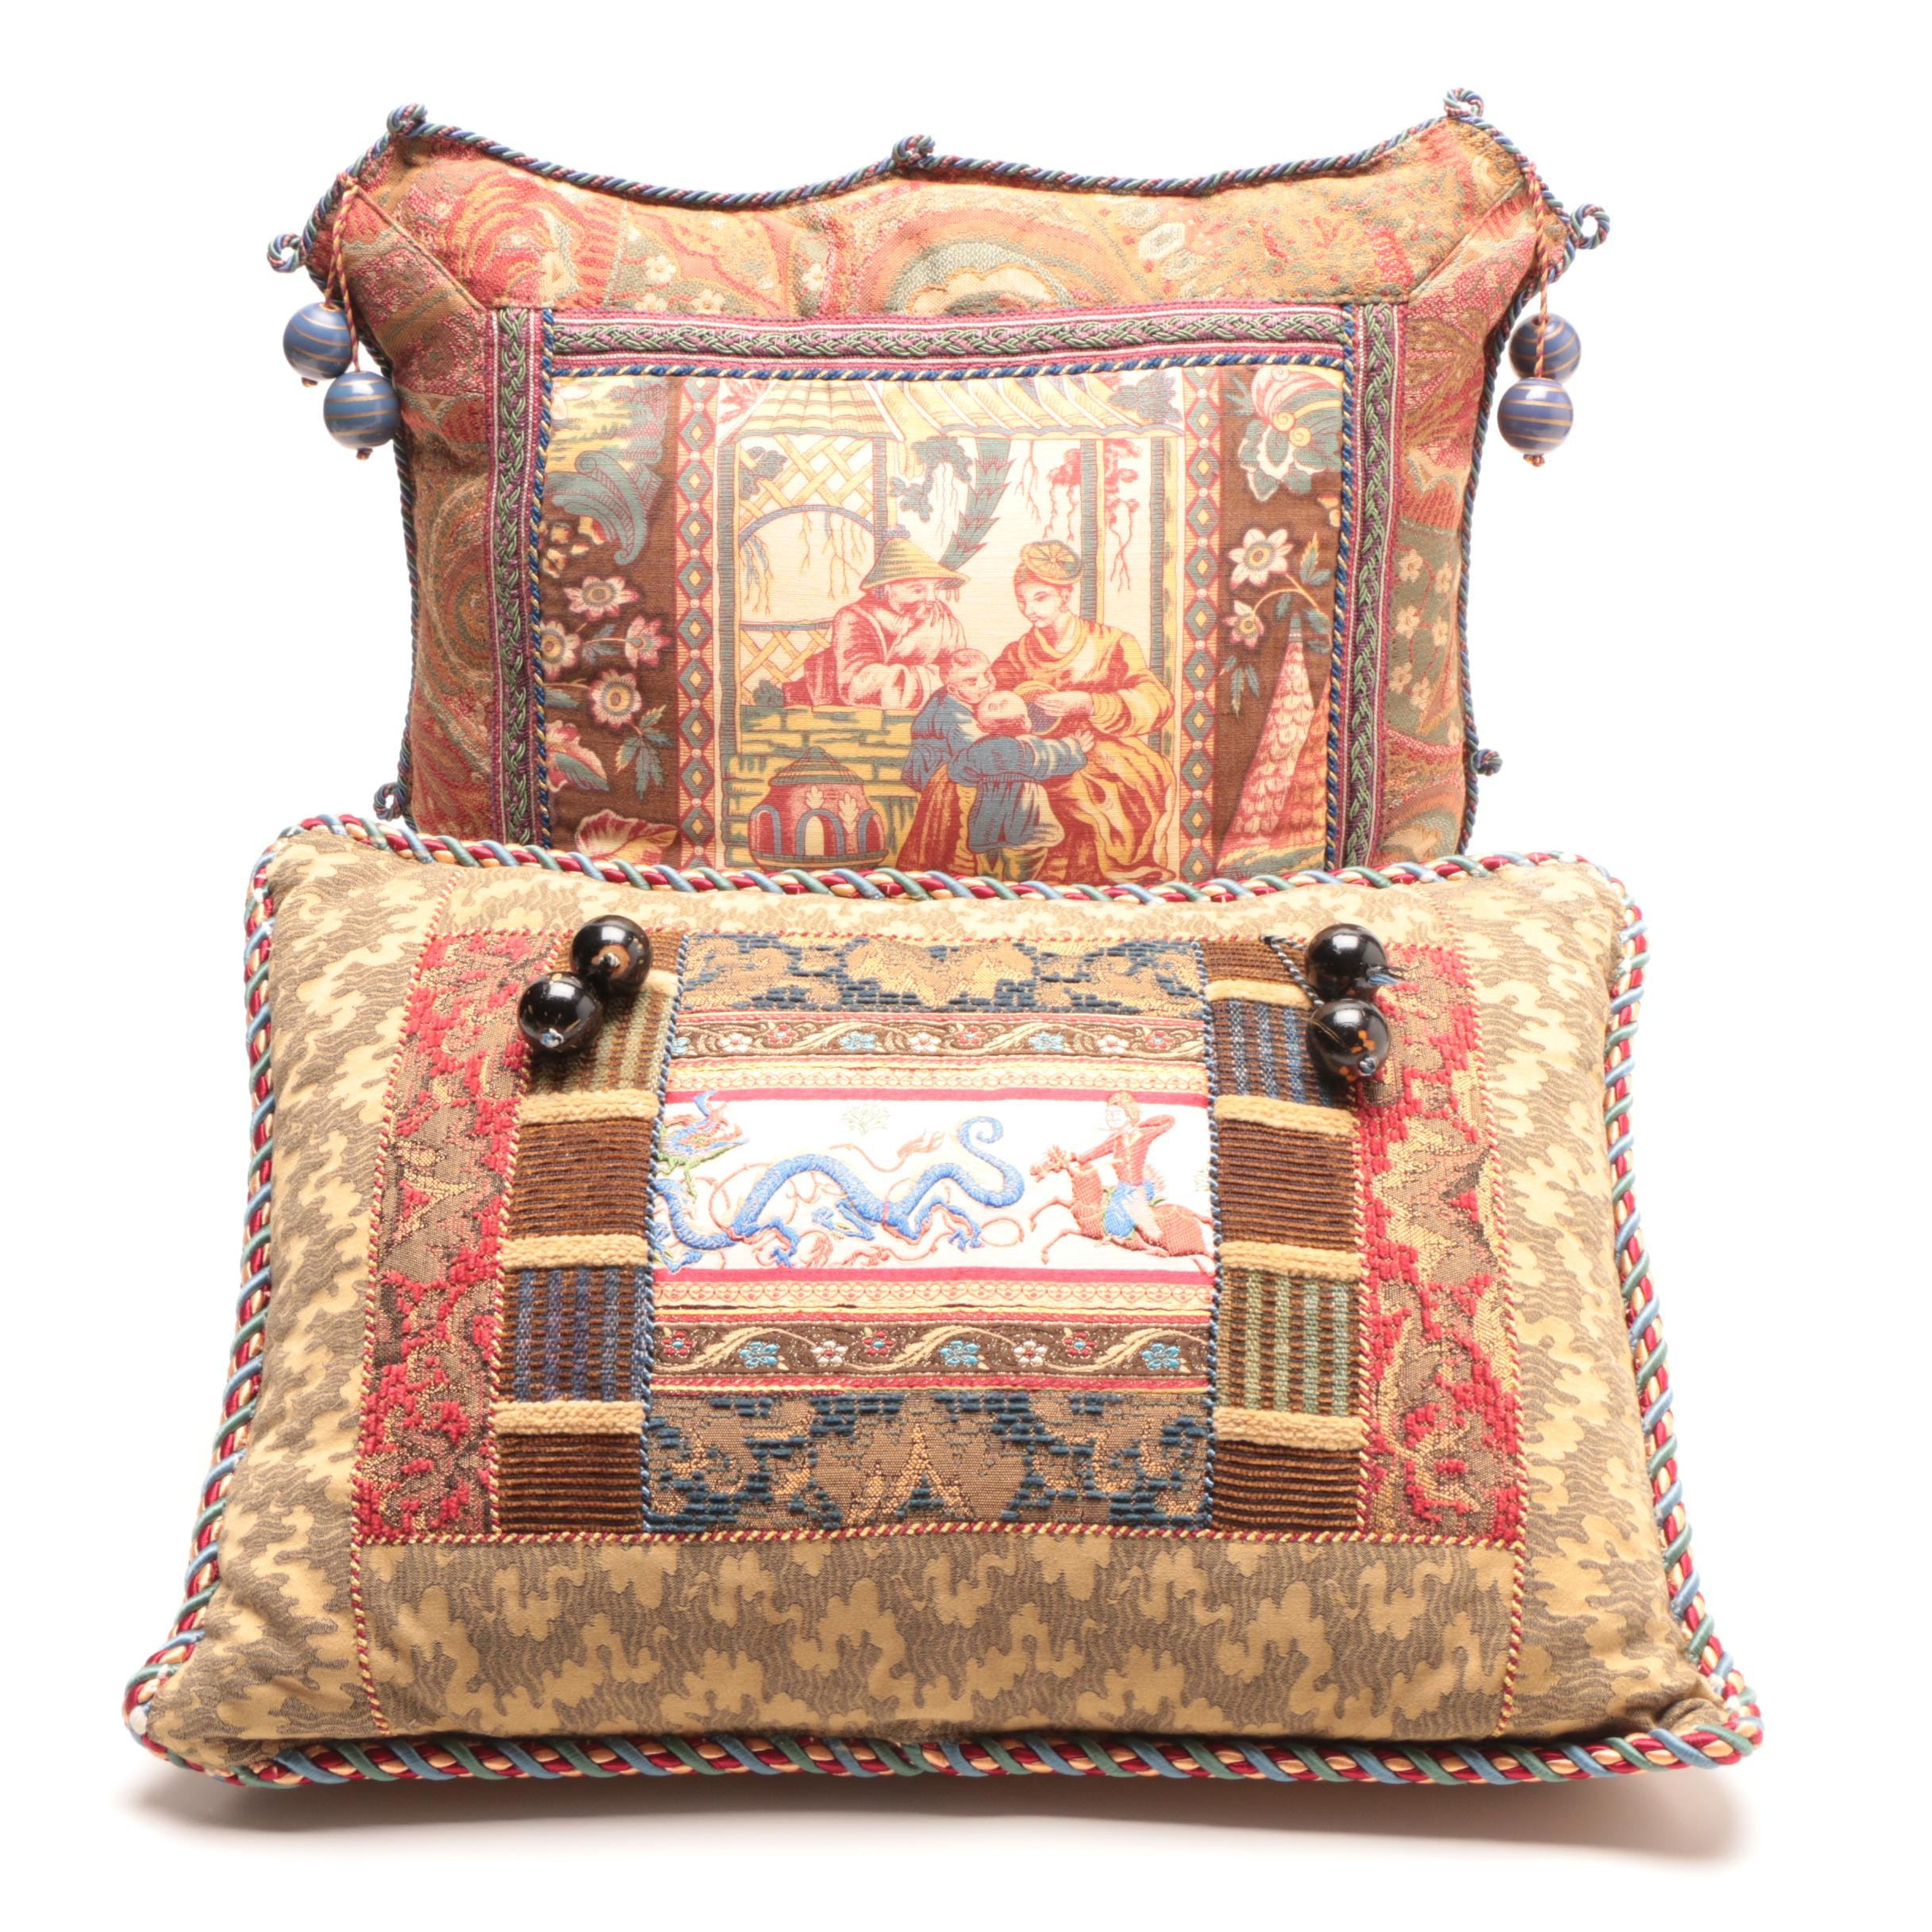 Decorative Pillows with Beaded Accents